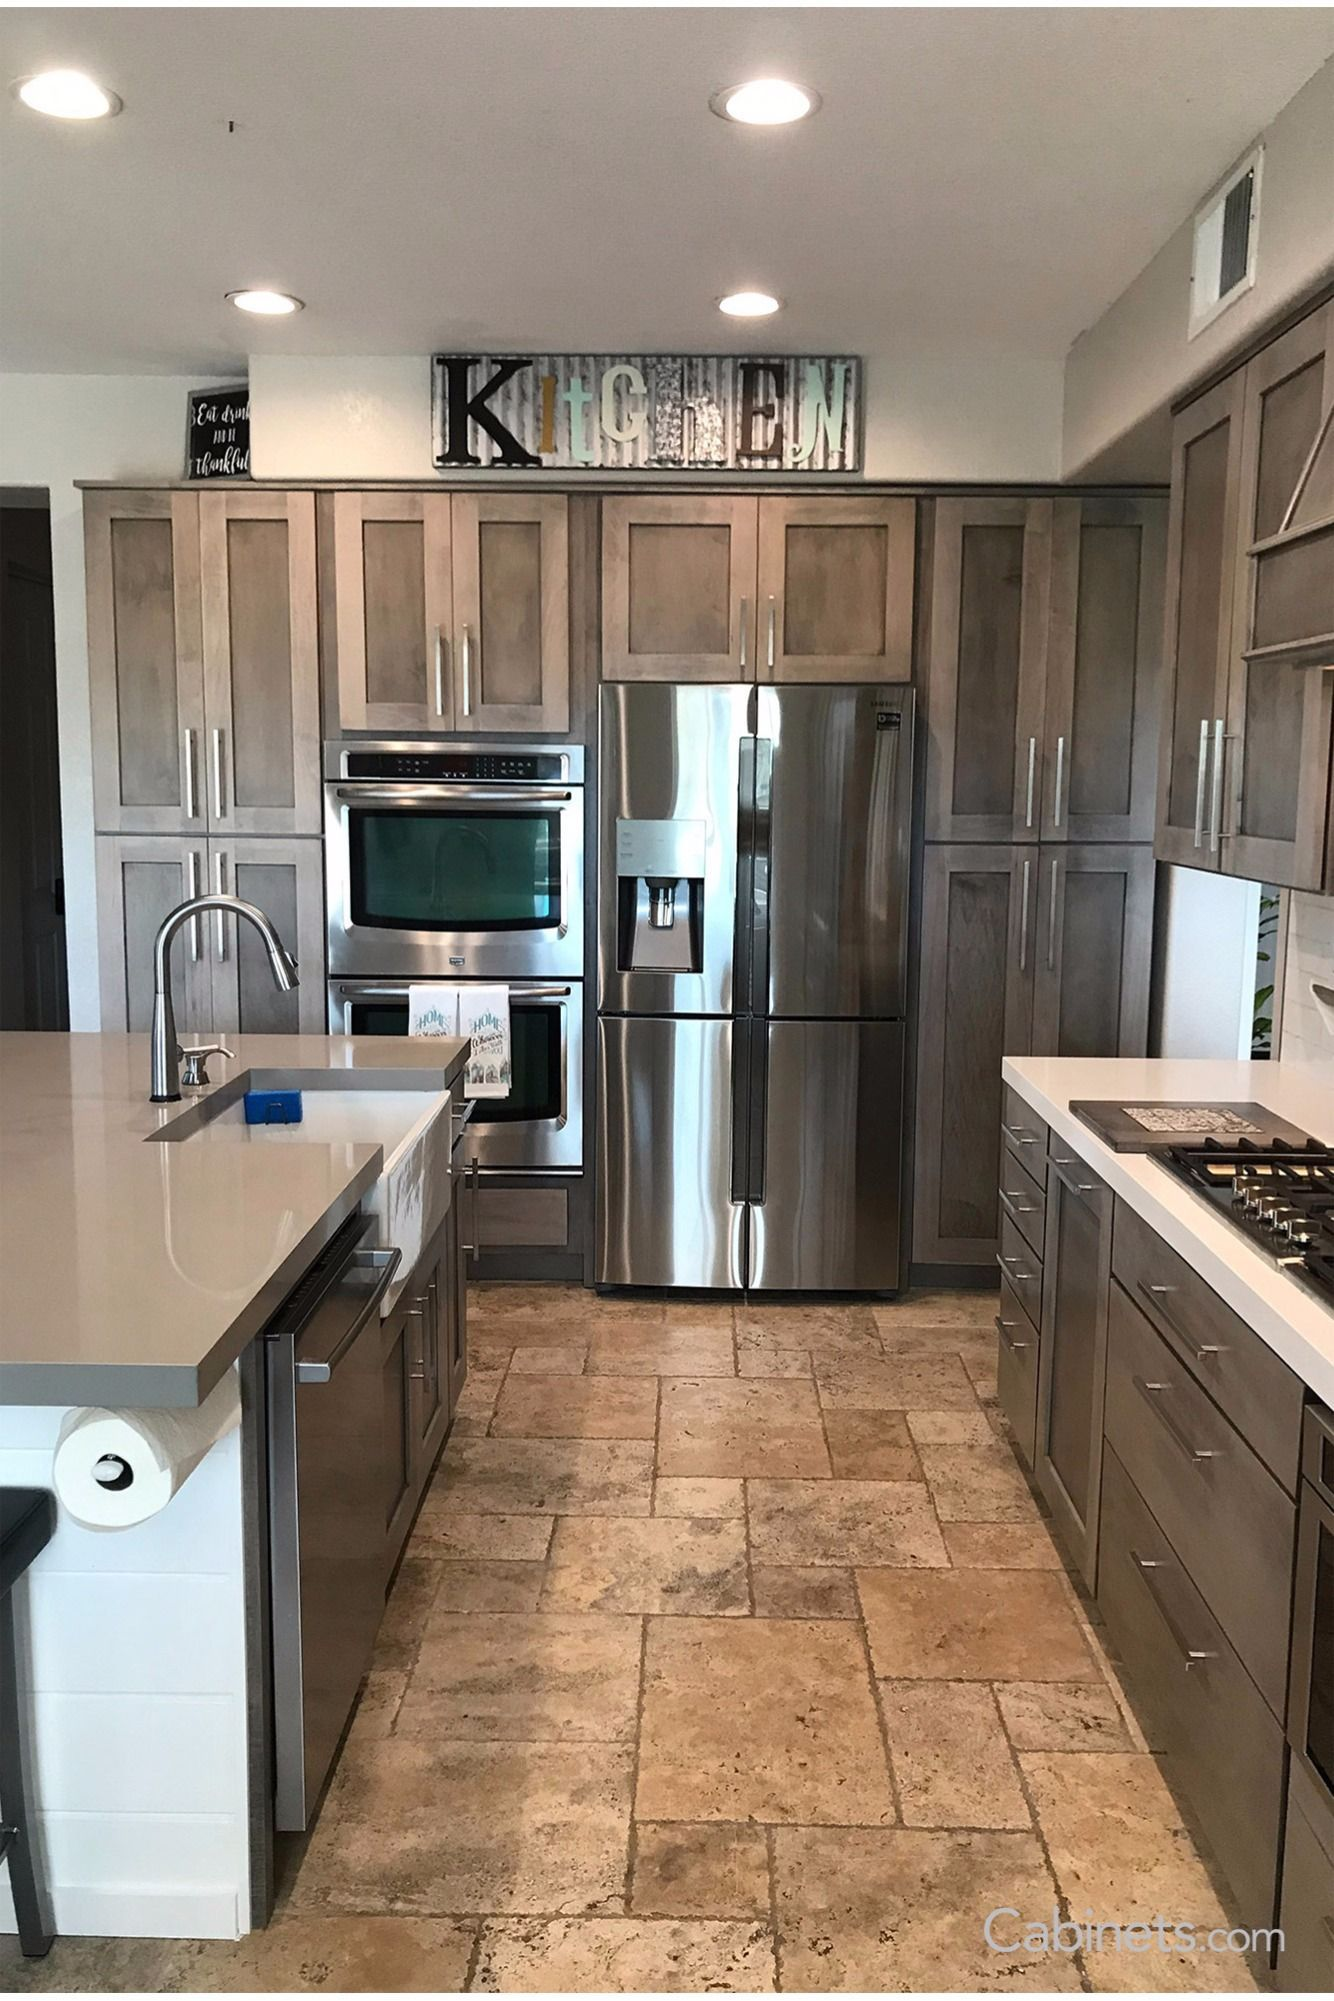 Kitchen Cabinets Online Shopping 2020 In 2020 Stained Kitchen Cabinets Online Kitchen Cabinets Top Kitchen Cabinets